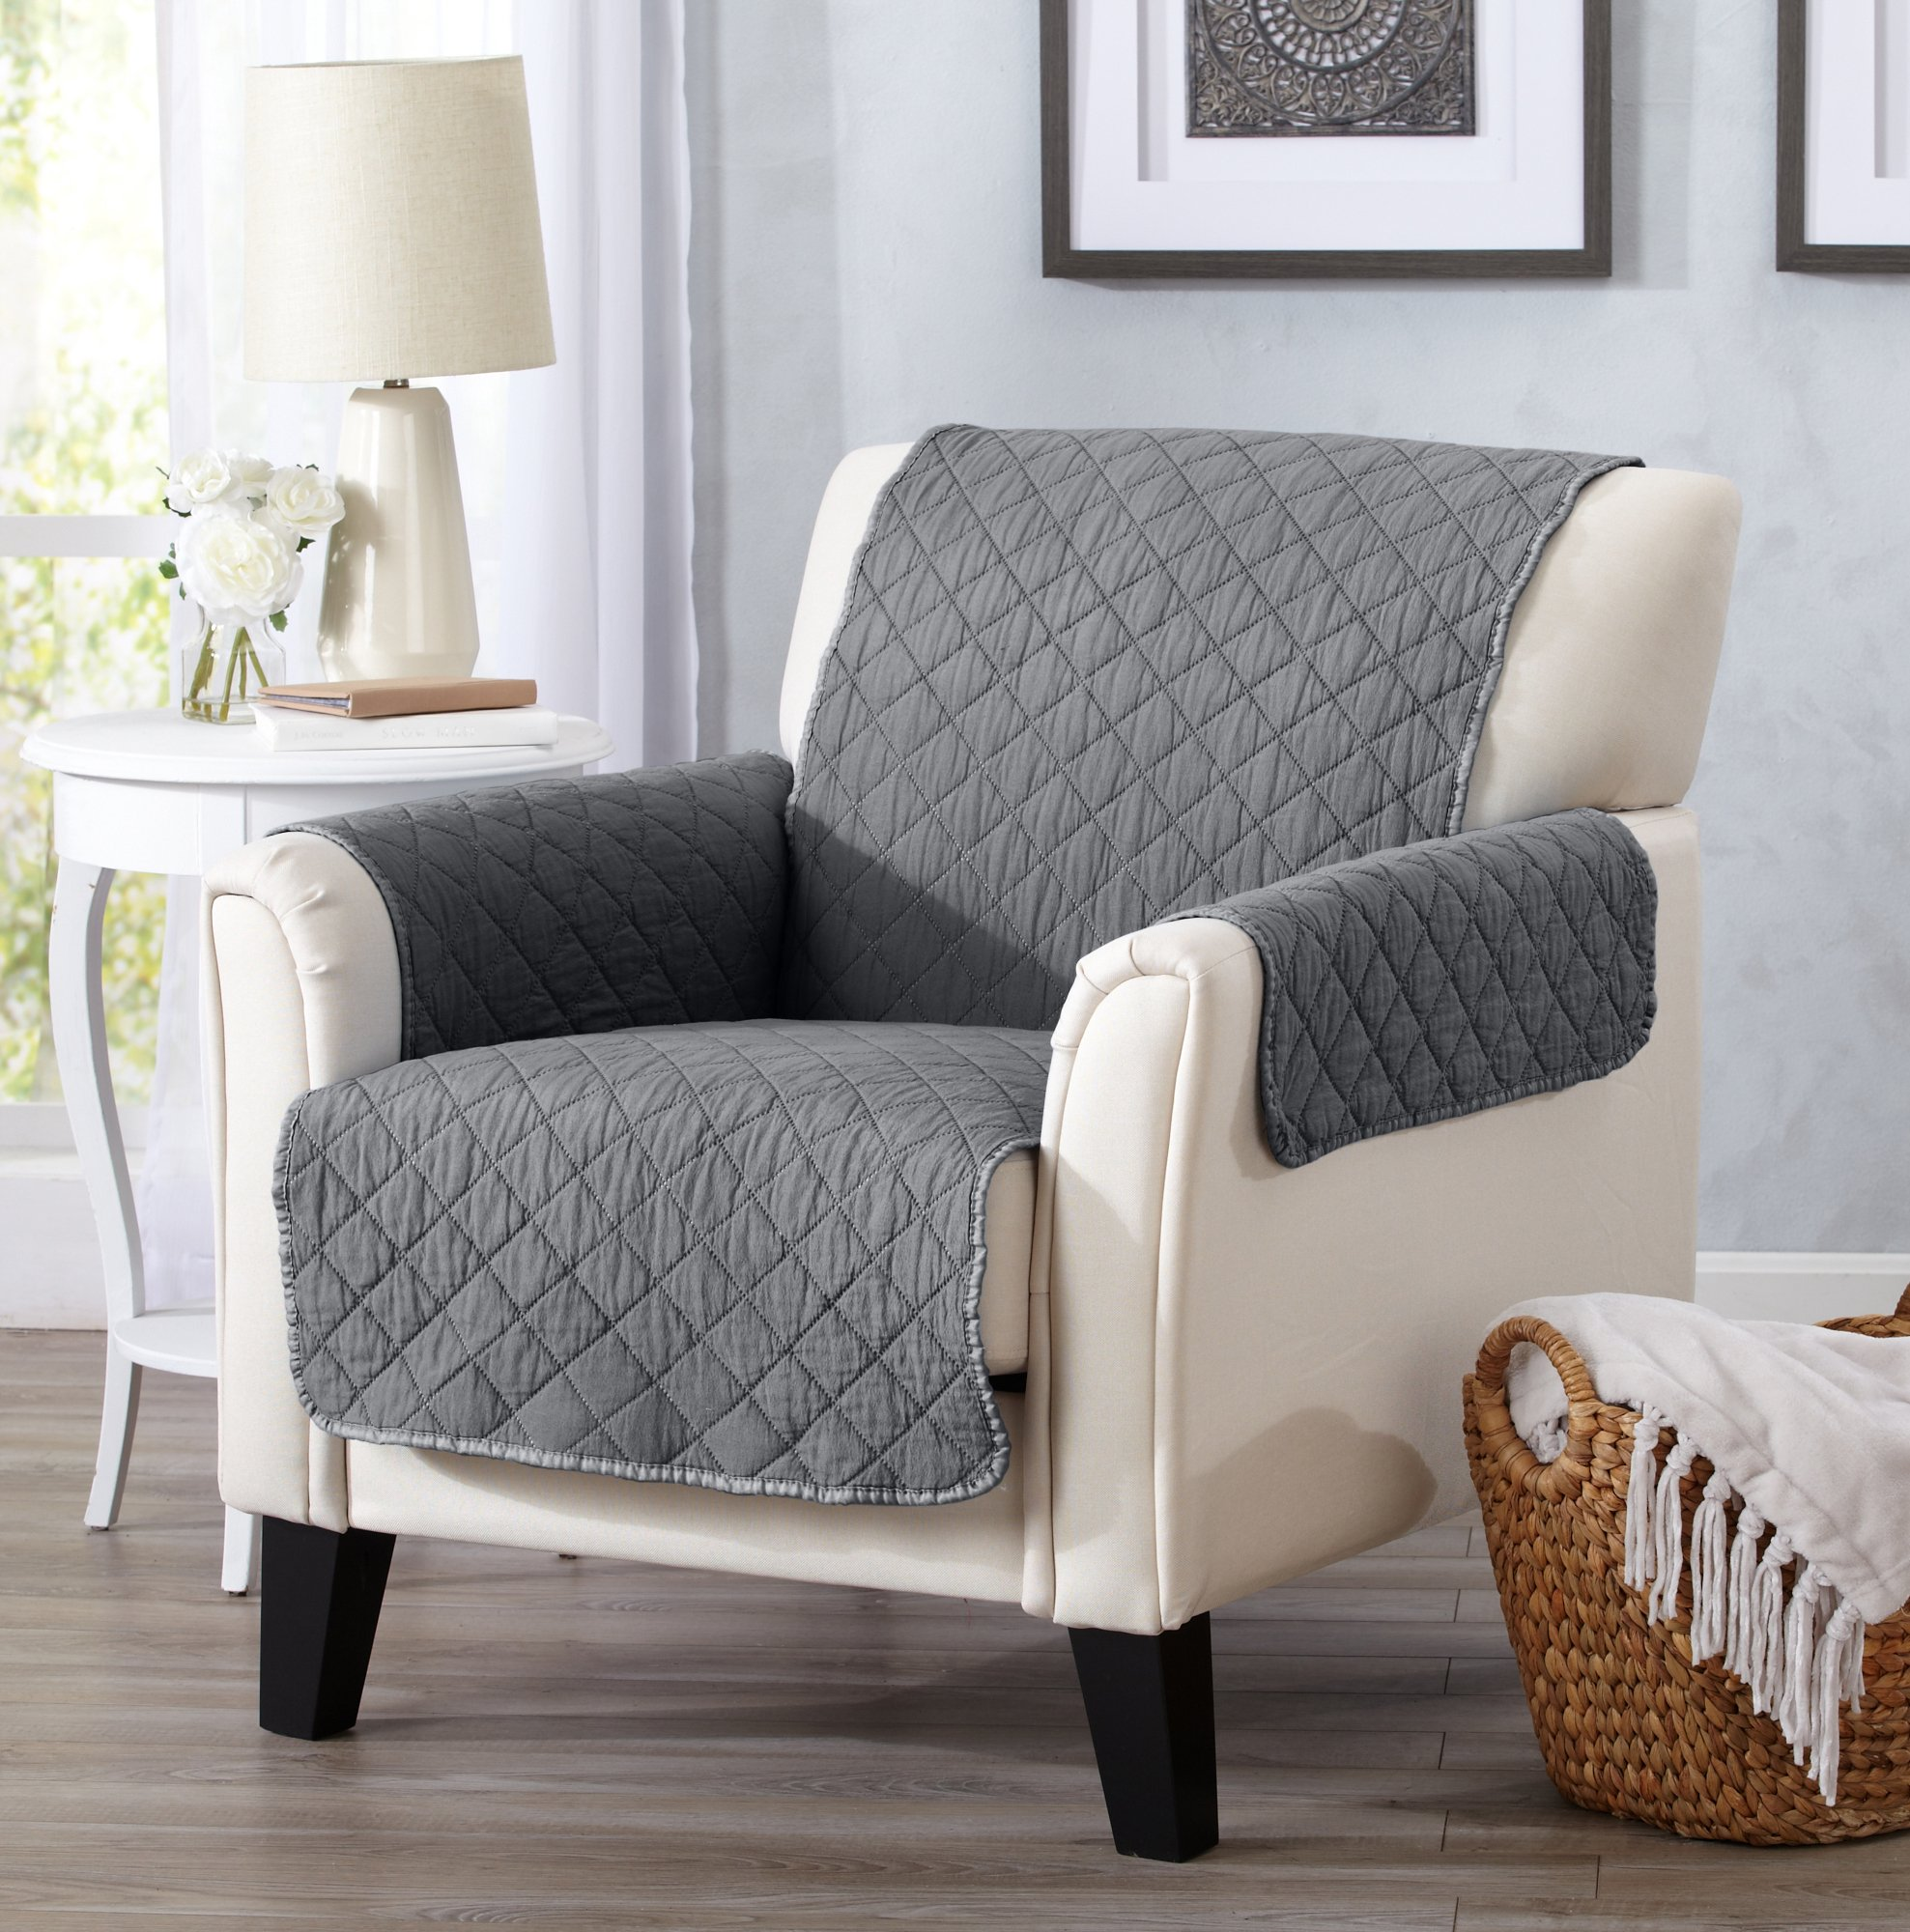 Great Bay Home Deluxe Stonewashed Stain Resistant Furniture Protector in Solid Colors. Laurina Collection By Brand. (Chair, Storm Grey)